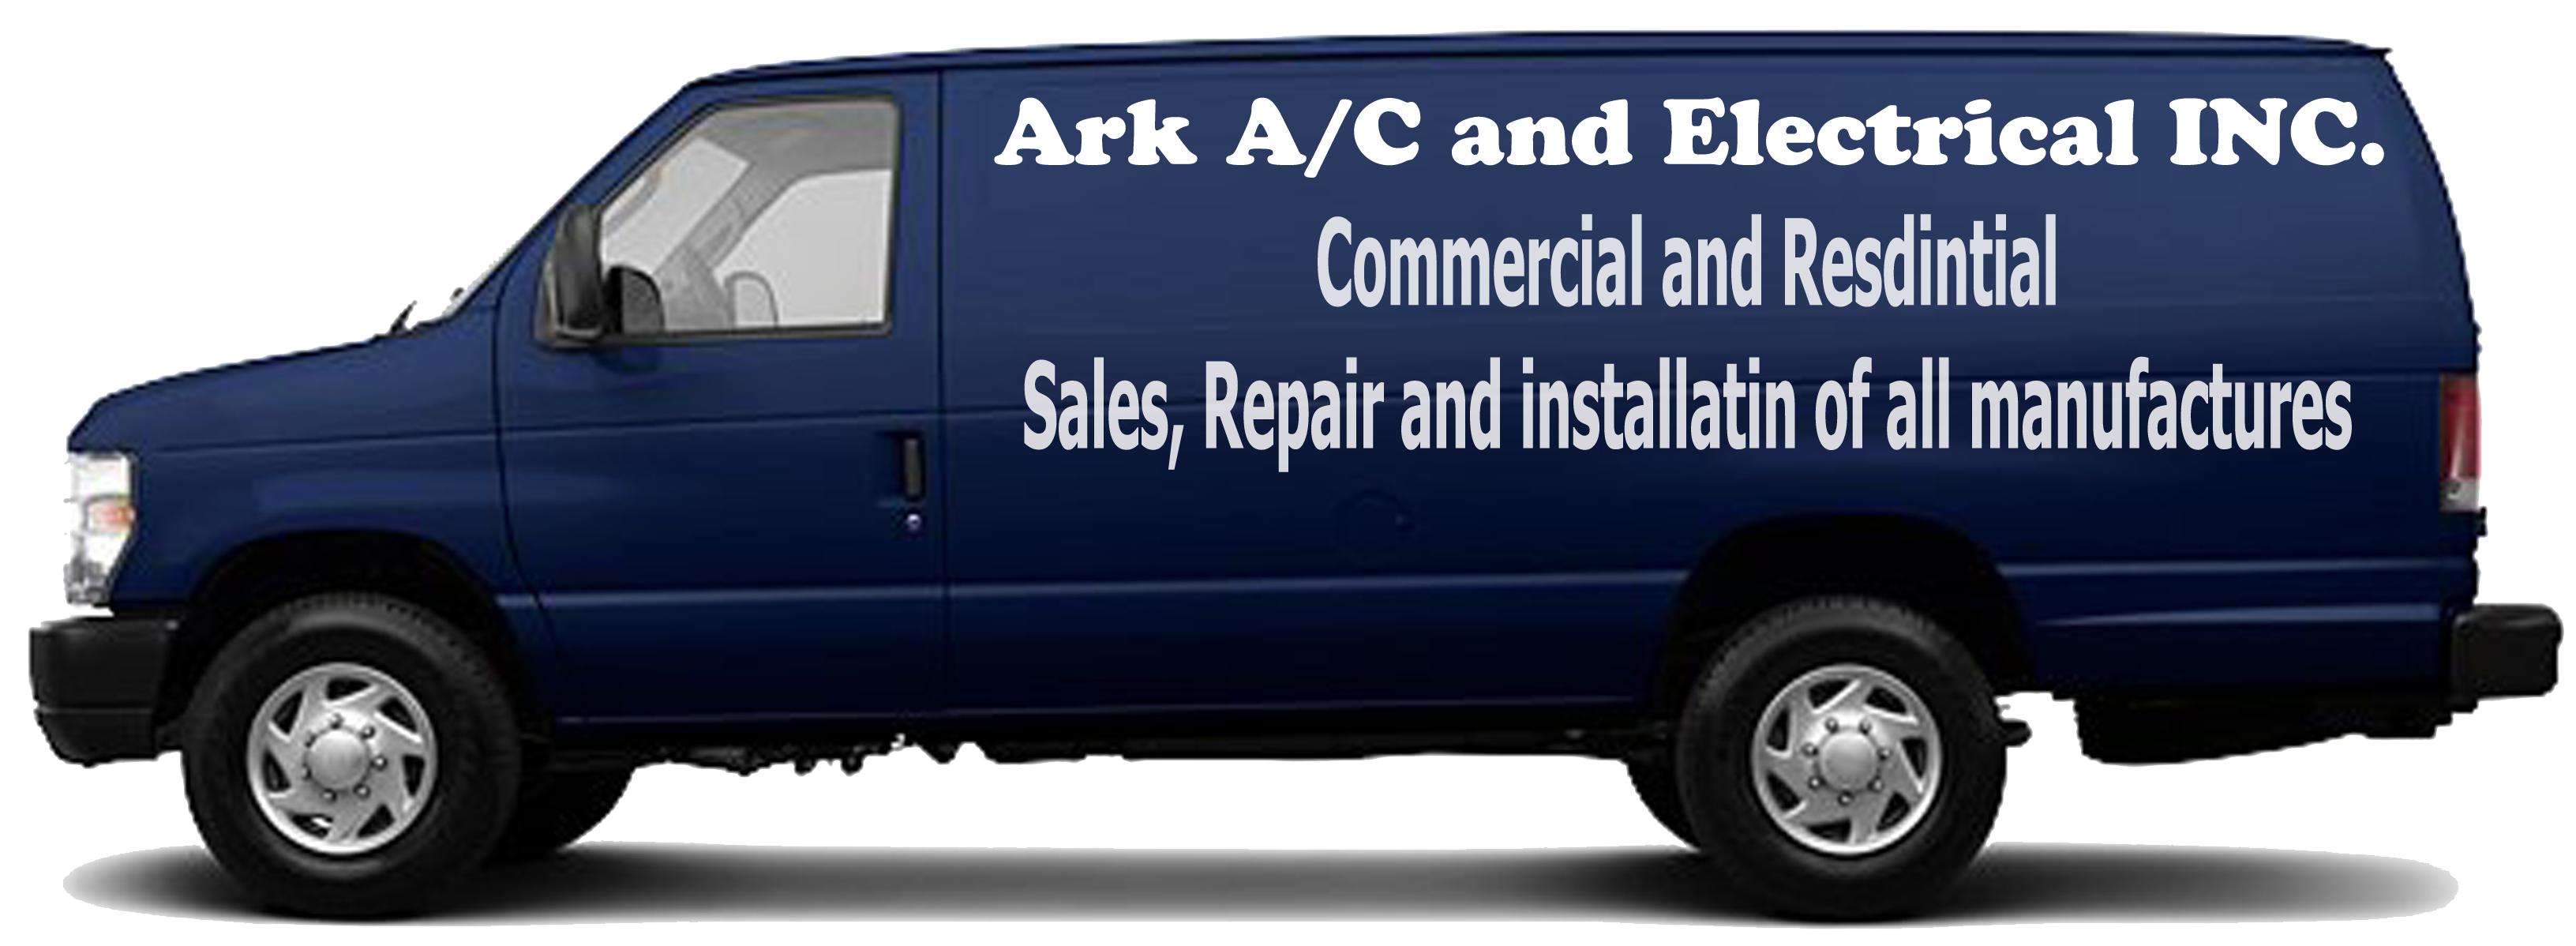 Ark A/C and Electrical Car's